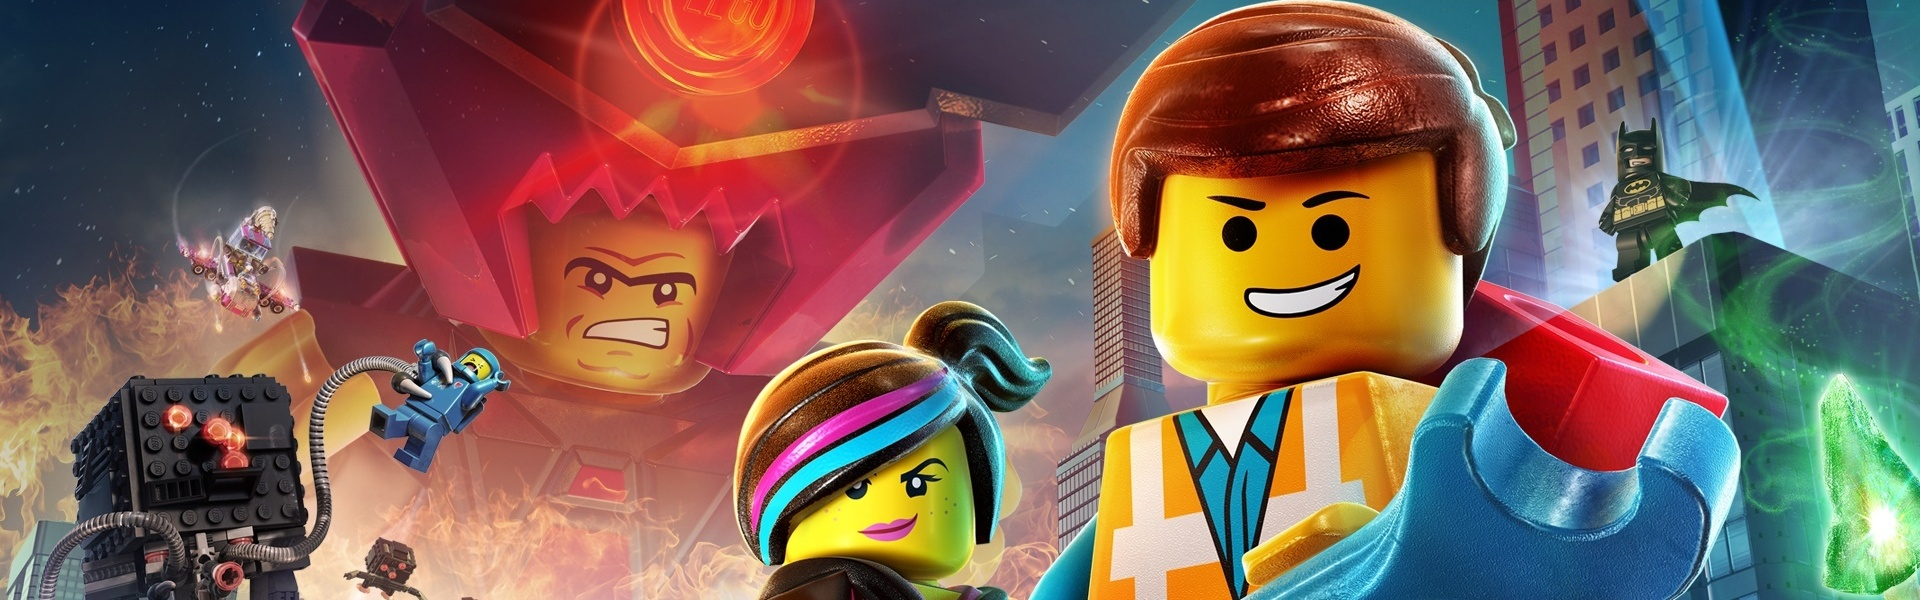 The LEGO Movie - Videogame Steam Key EUROPE